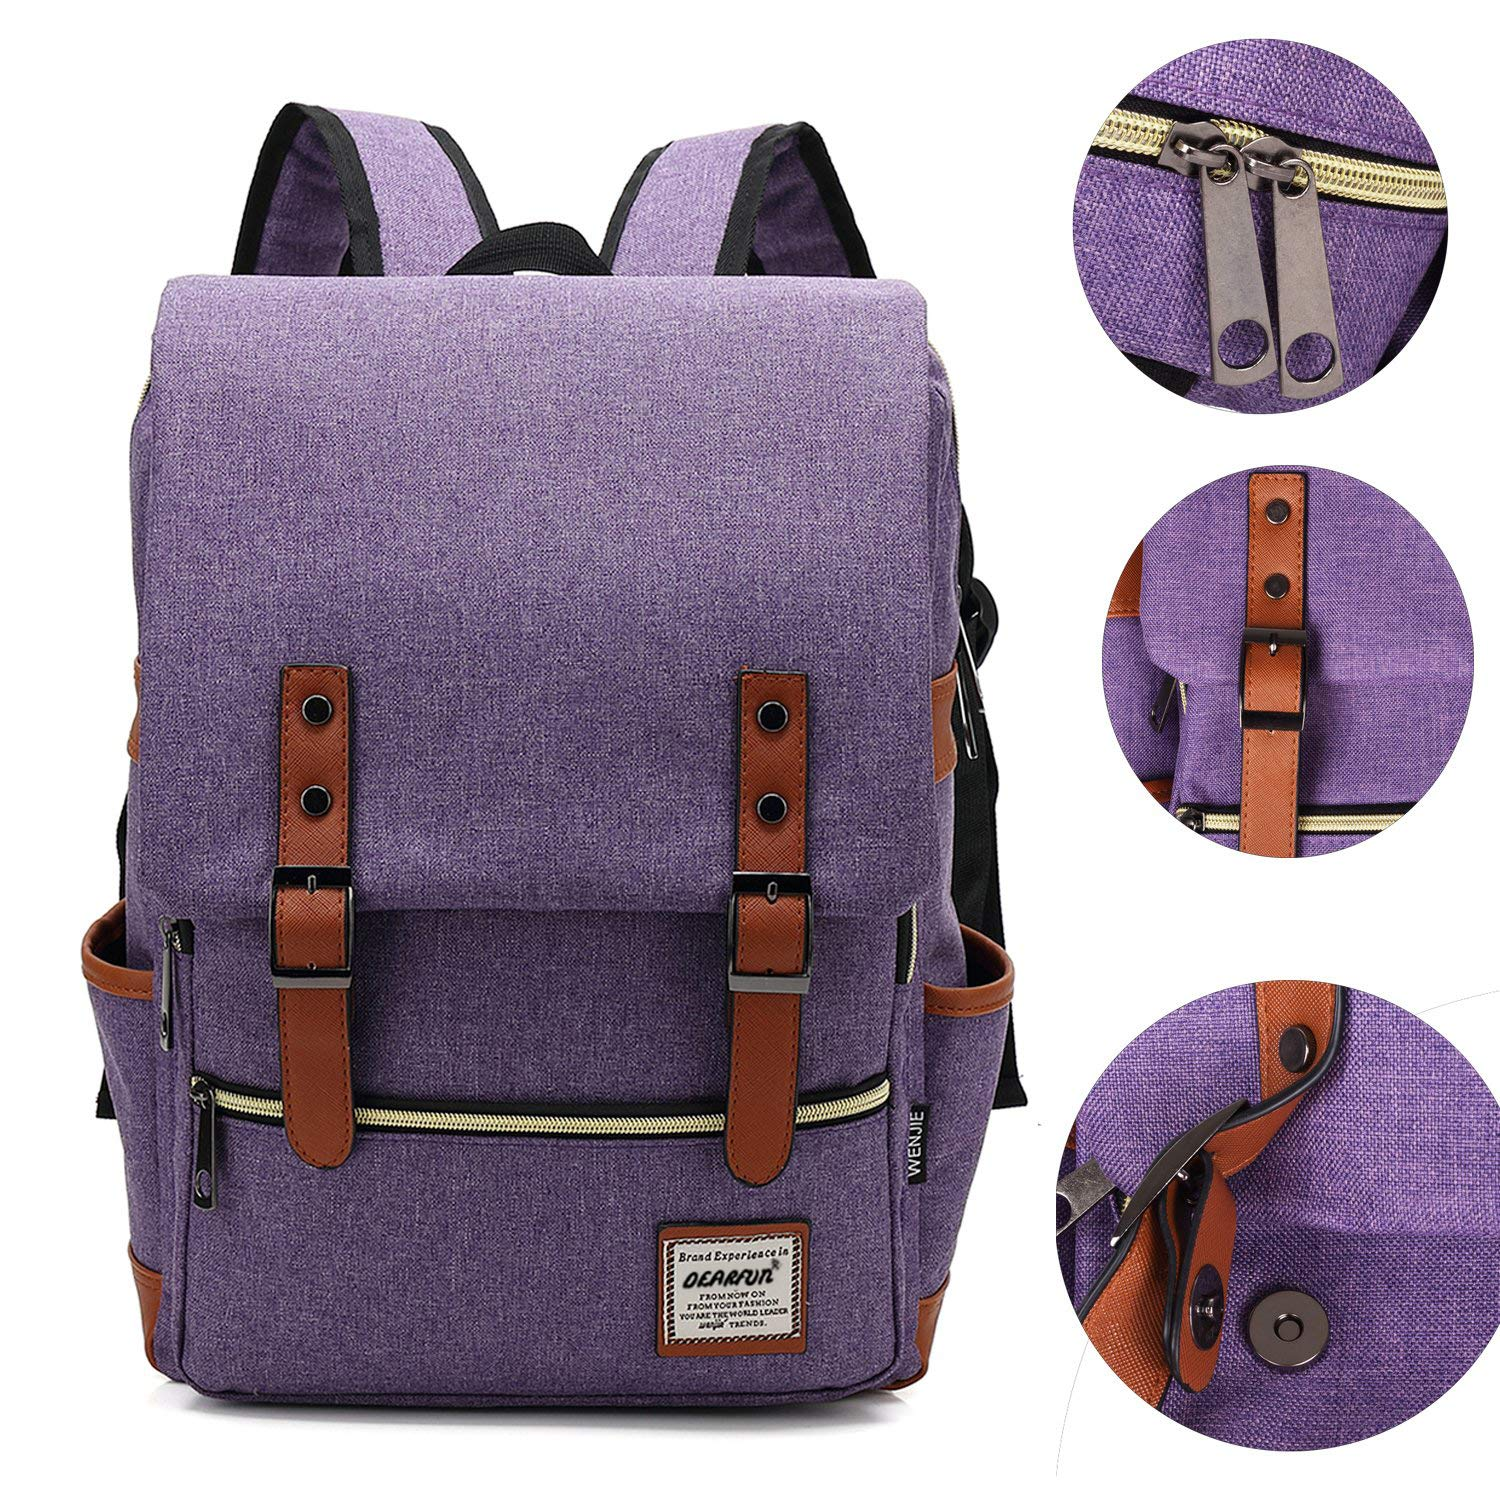 Purple Cool Style School Backpack Oxford Fabric Backpack for High School//College Student Elegant Casual Daypacks Outdoor Sports Rucksack School Shoulder Bag for Men//Women 15.6Inch MacBook by DEARFUN